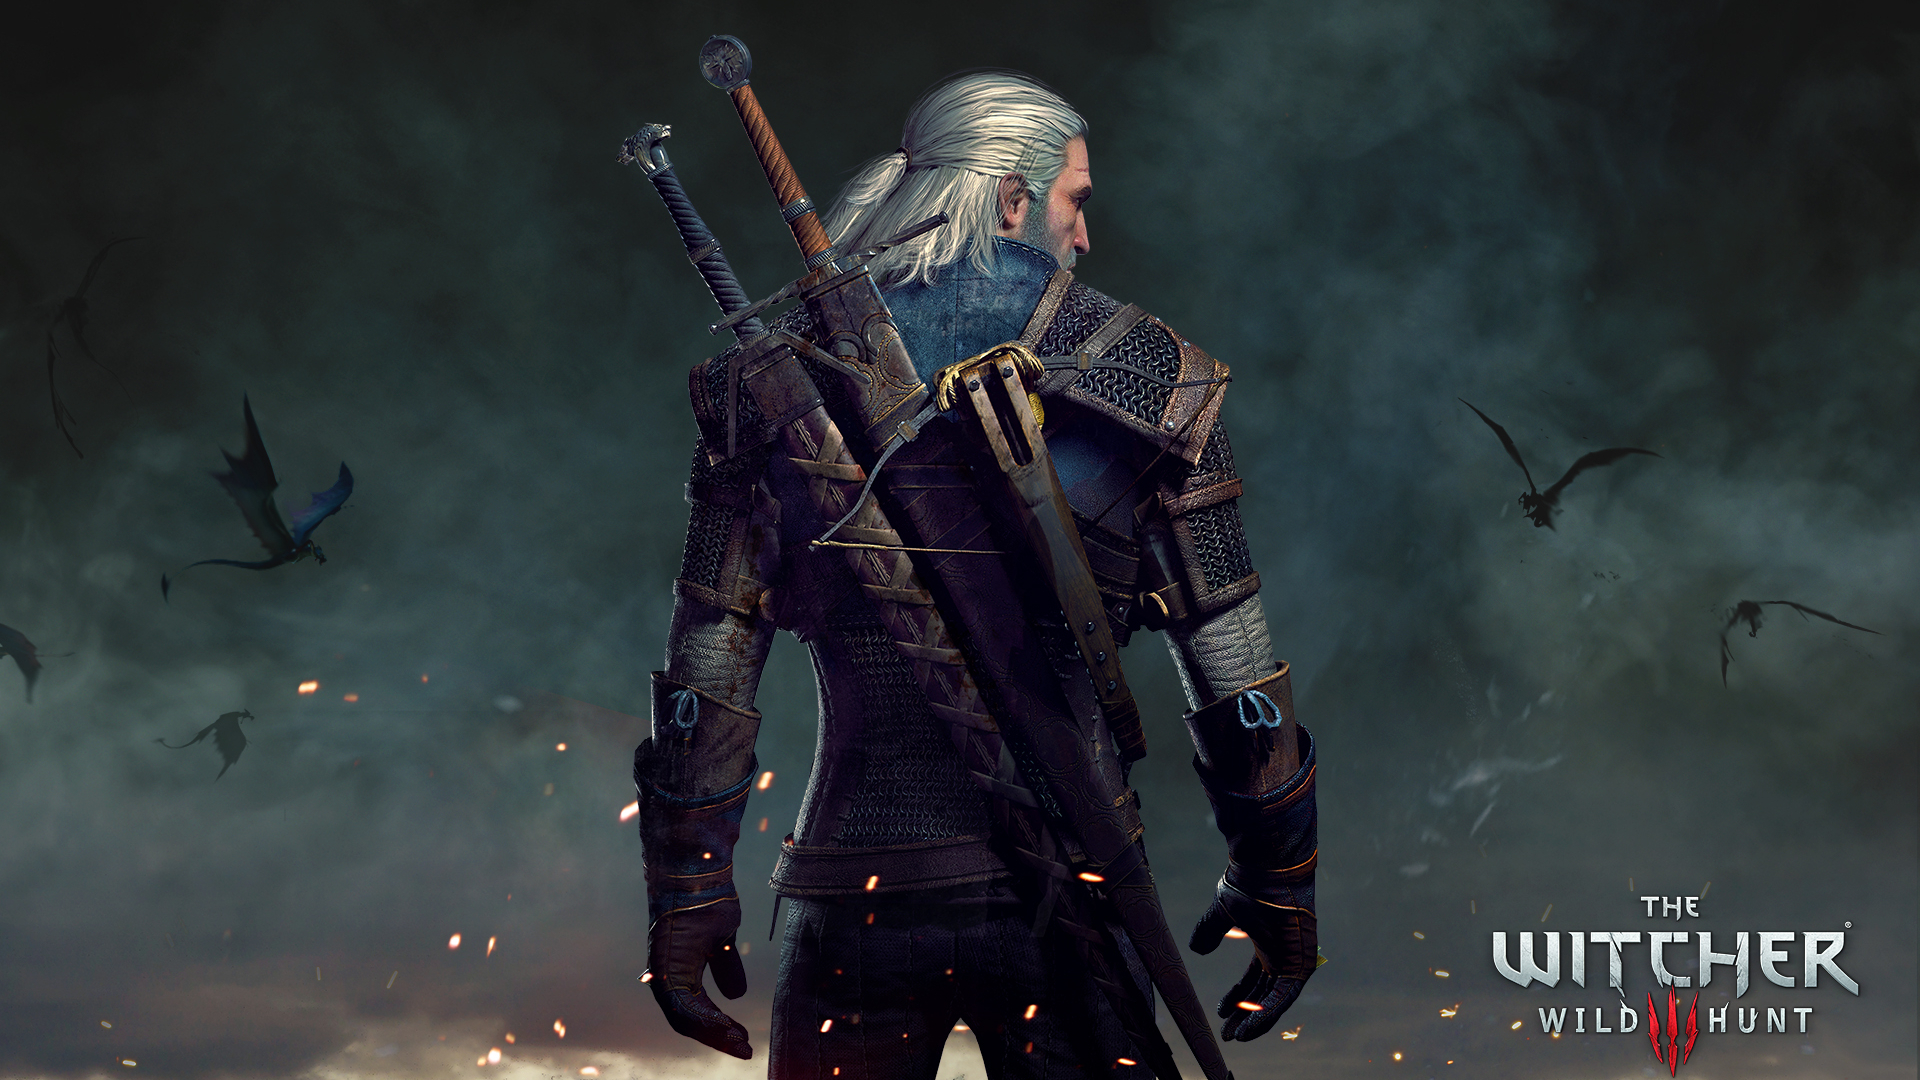 Free Download Geralt The Witcher 3 Wild Hunt Wallpapers Hd